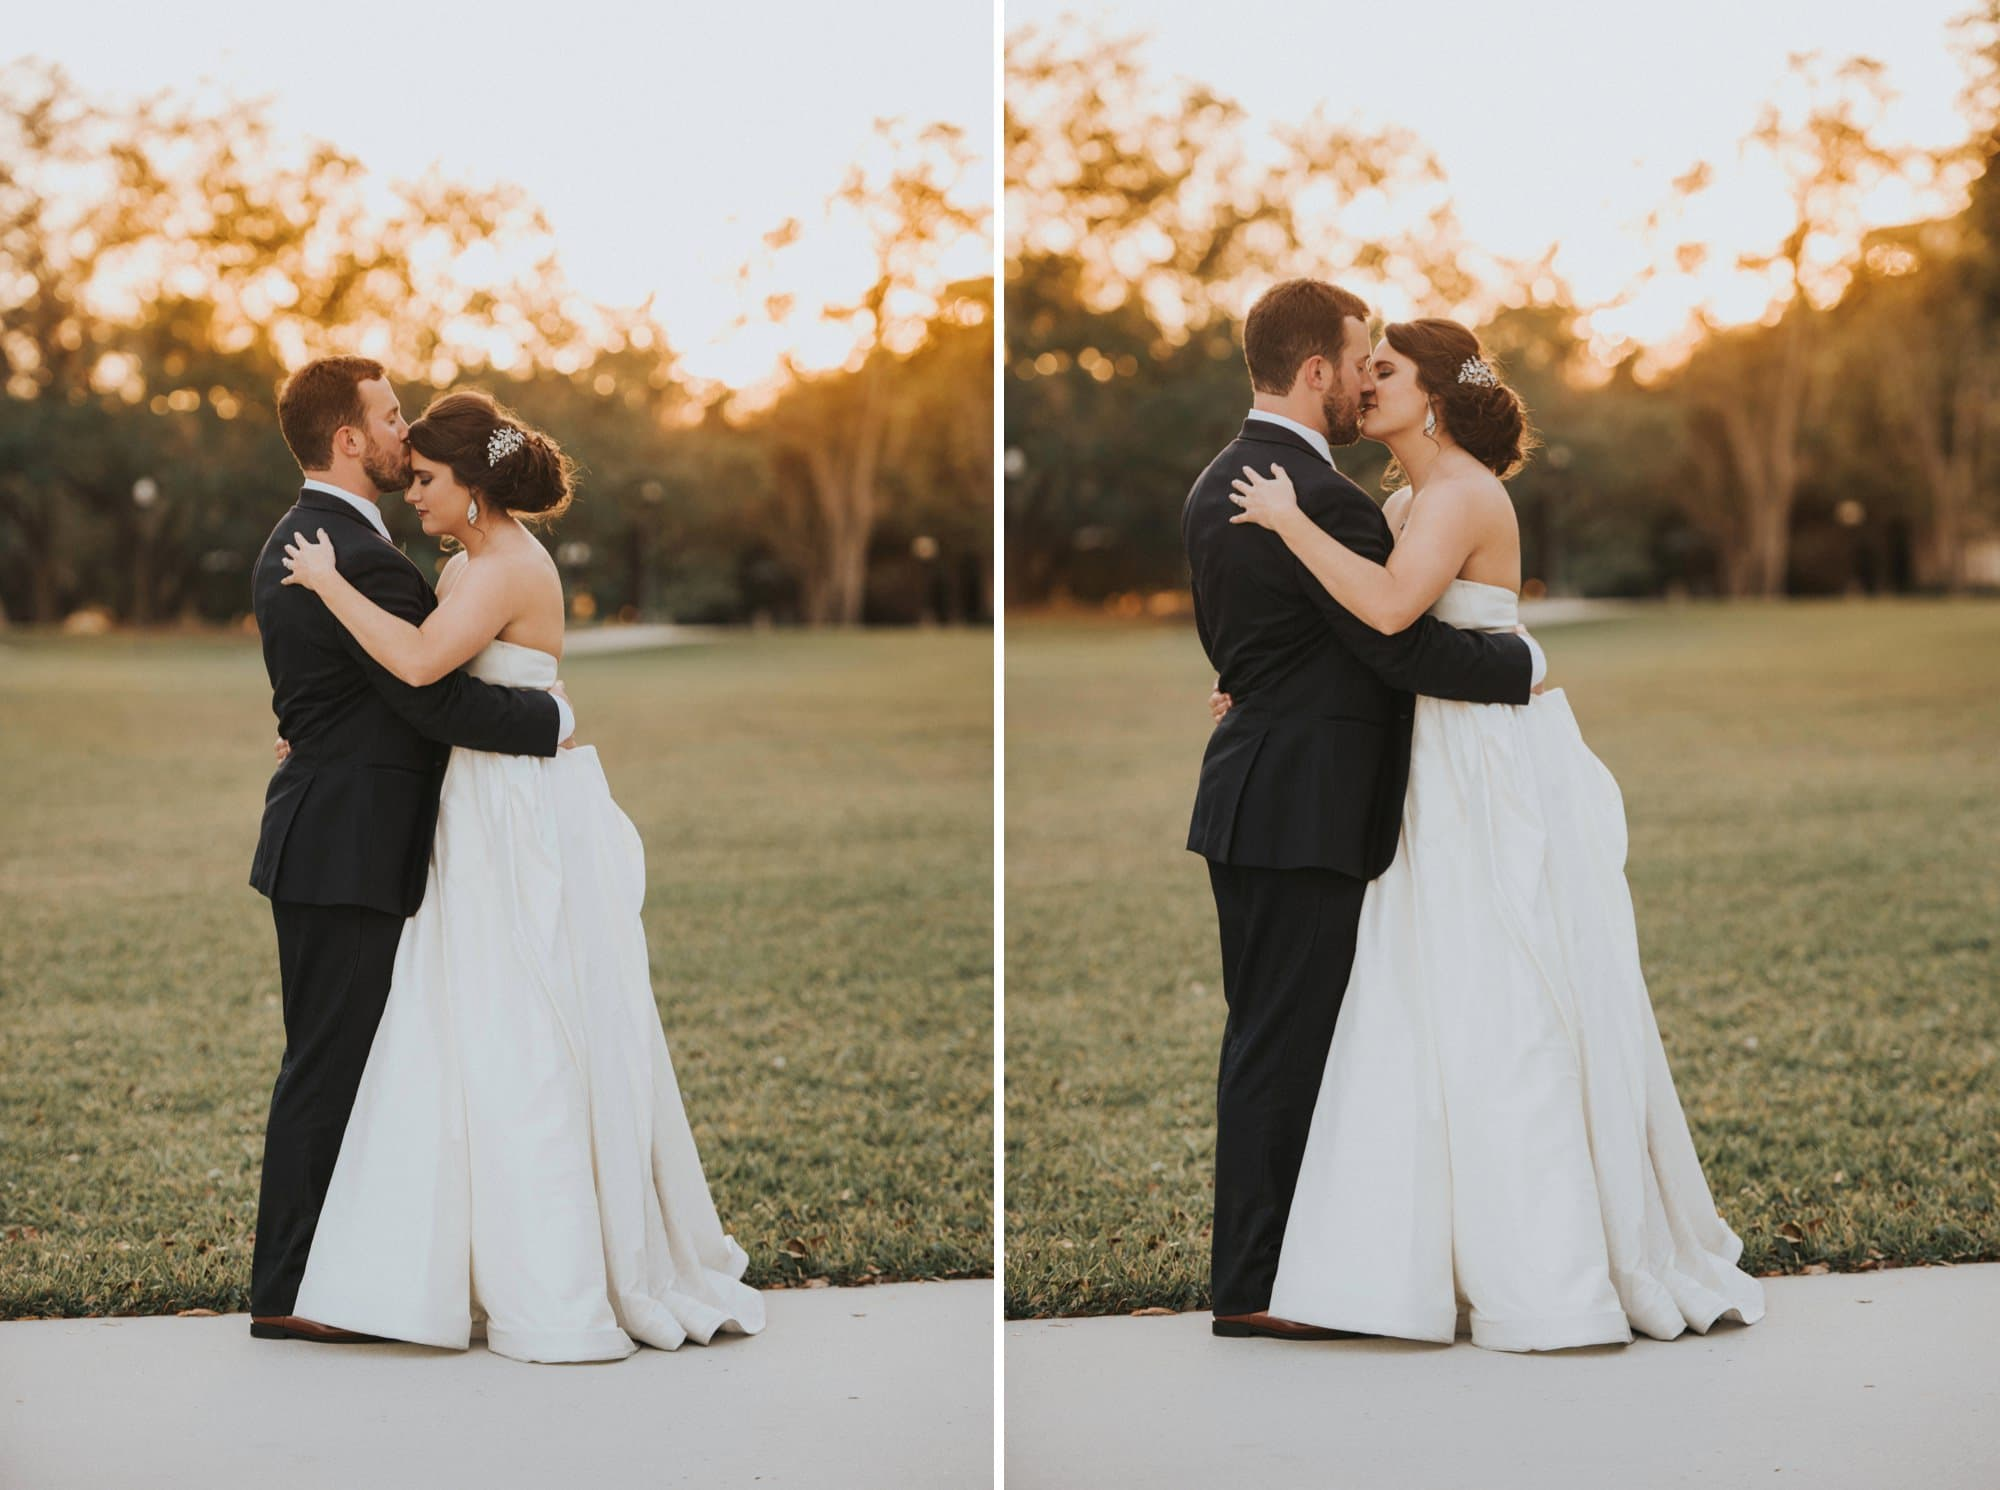 Orlando Museum of Art Wedding - Ashlee + Logan - Jill Houser